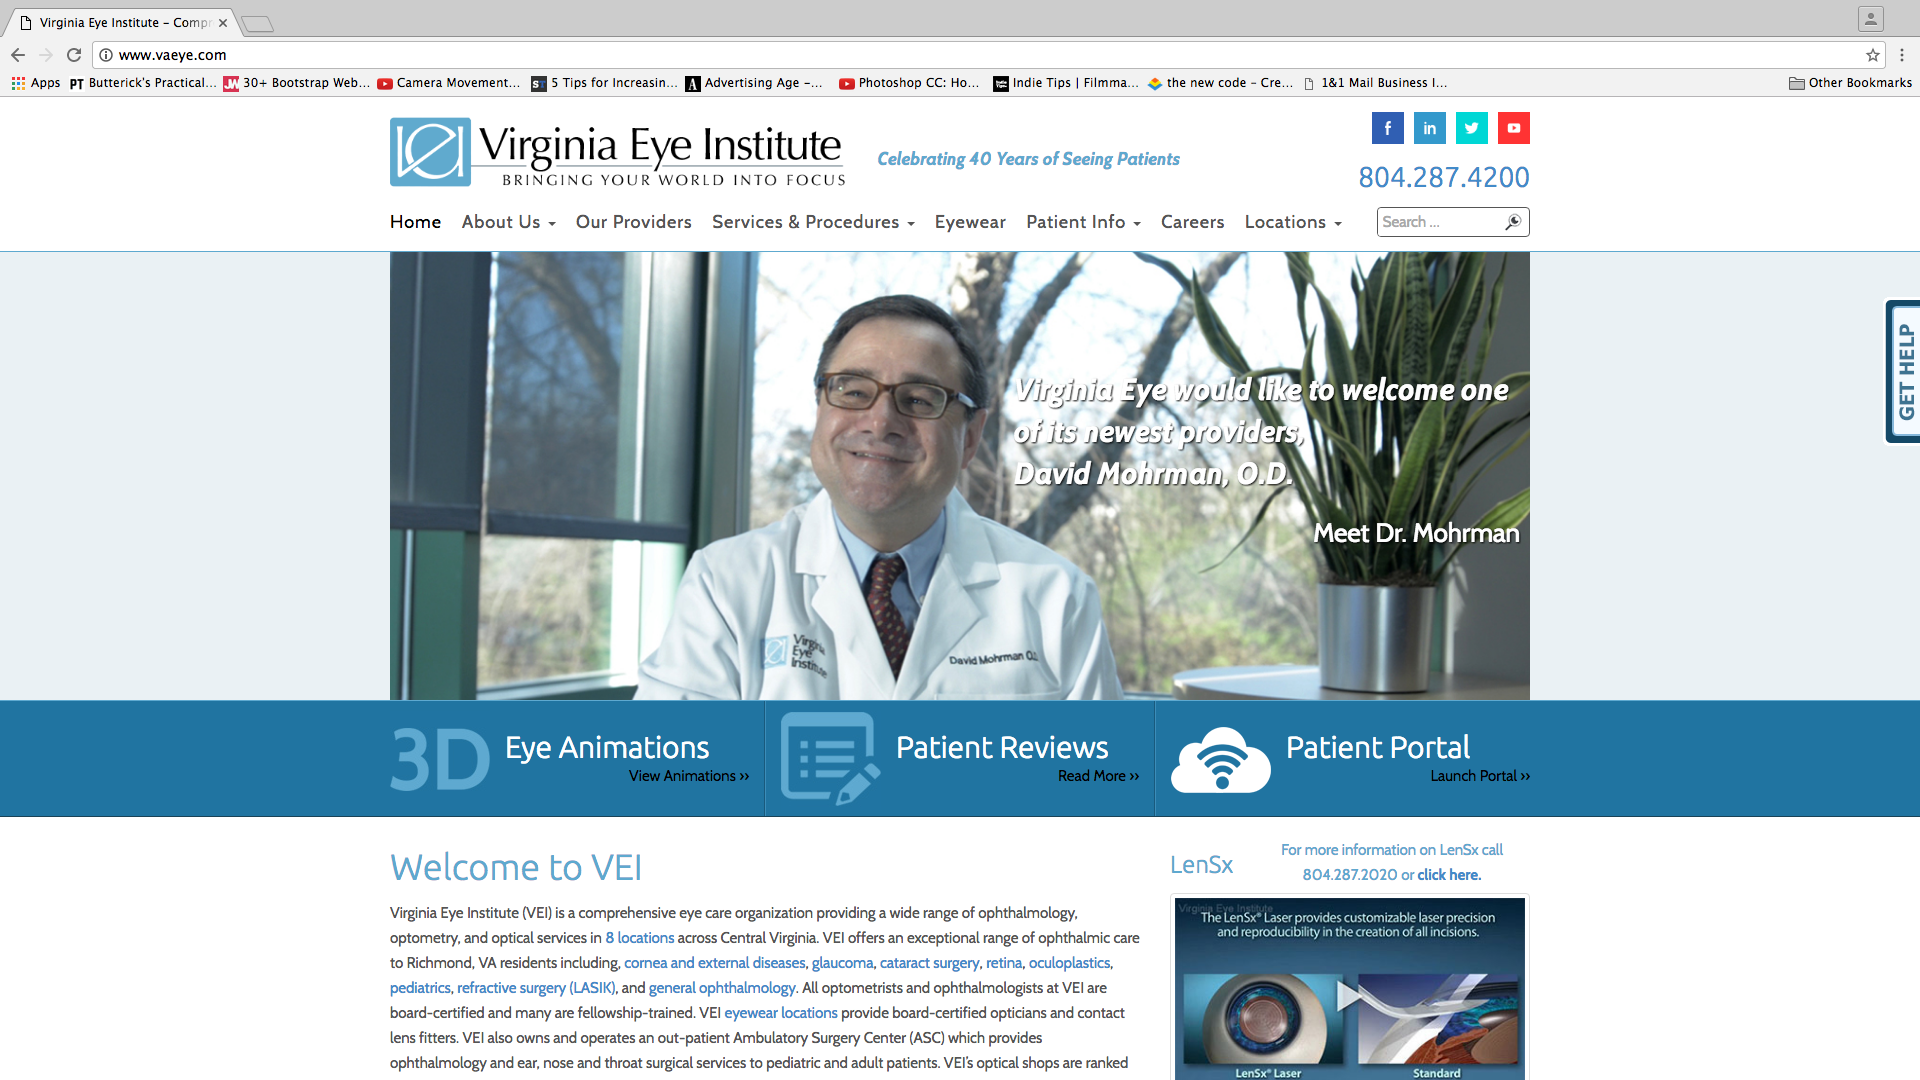 Virginia Eye Institute Website